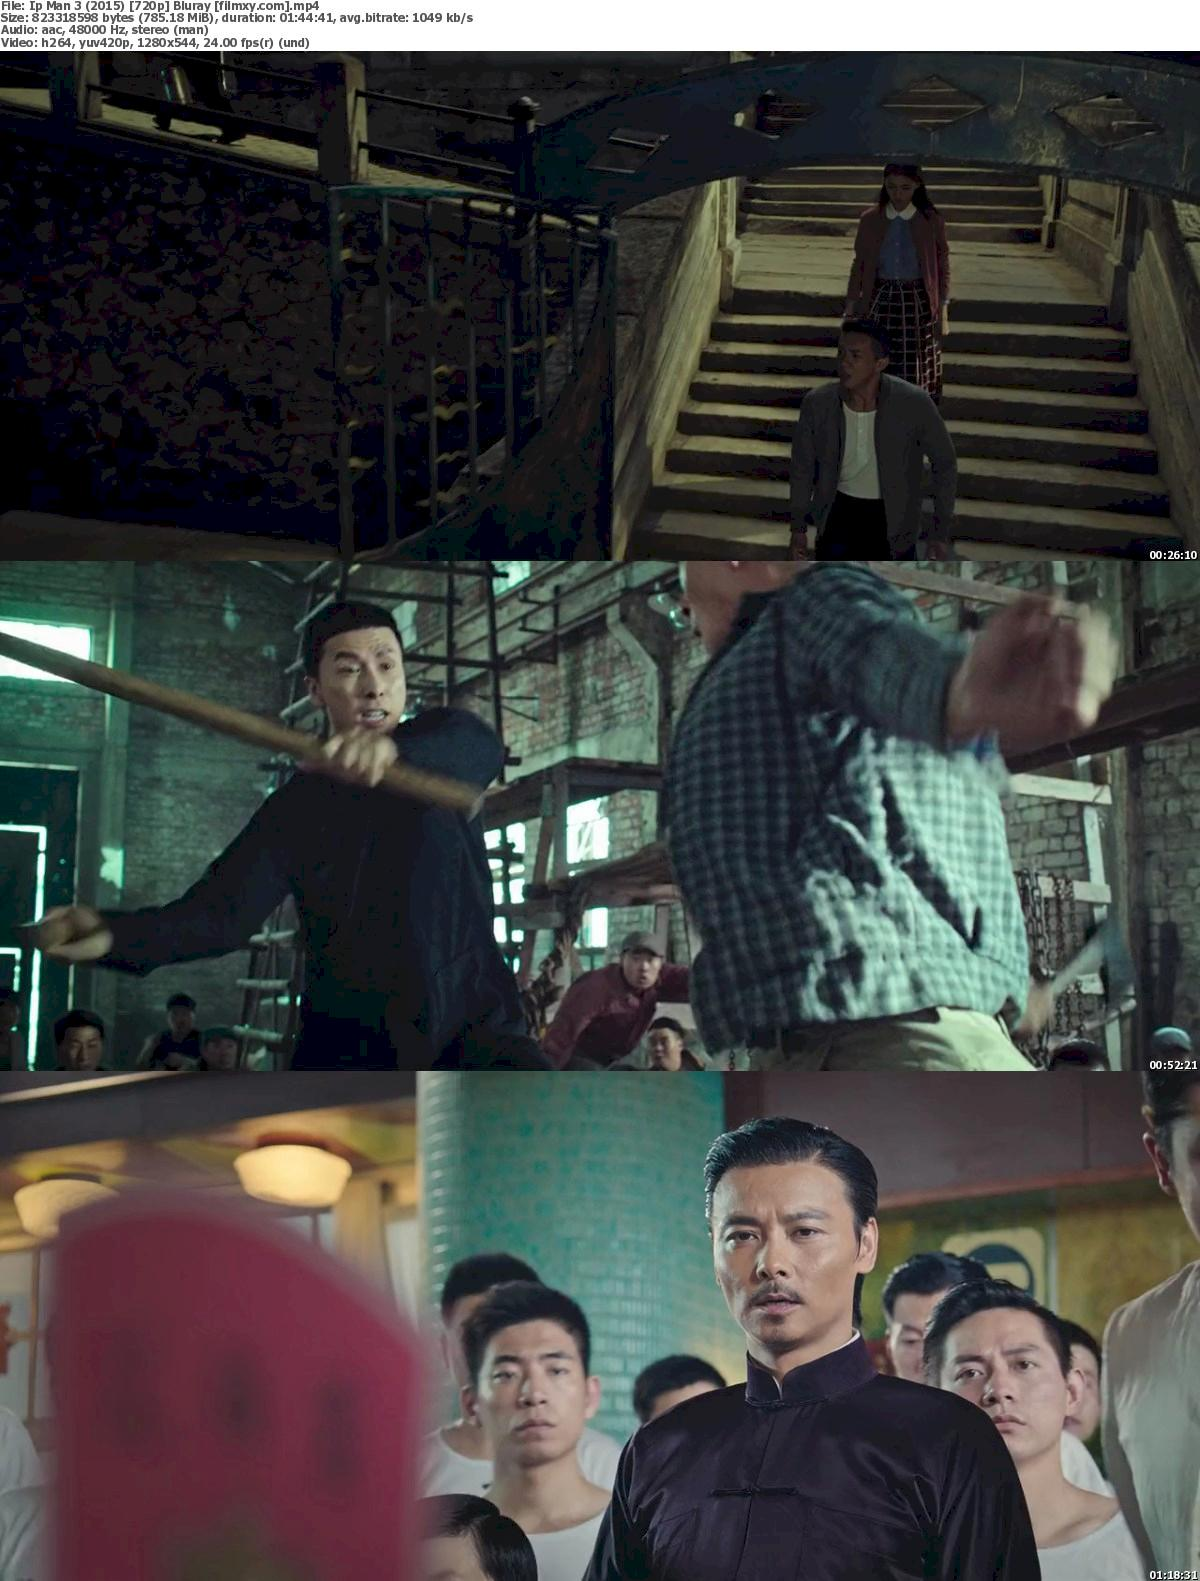 Ip Man 3 (2015) 720p & 1080p Bluray Free Movies Watch Online 720p Screenshot